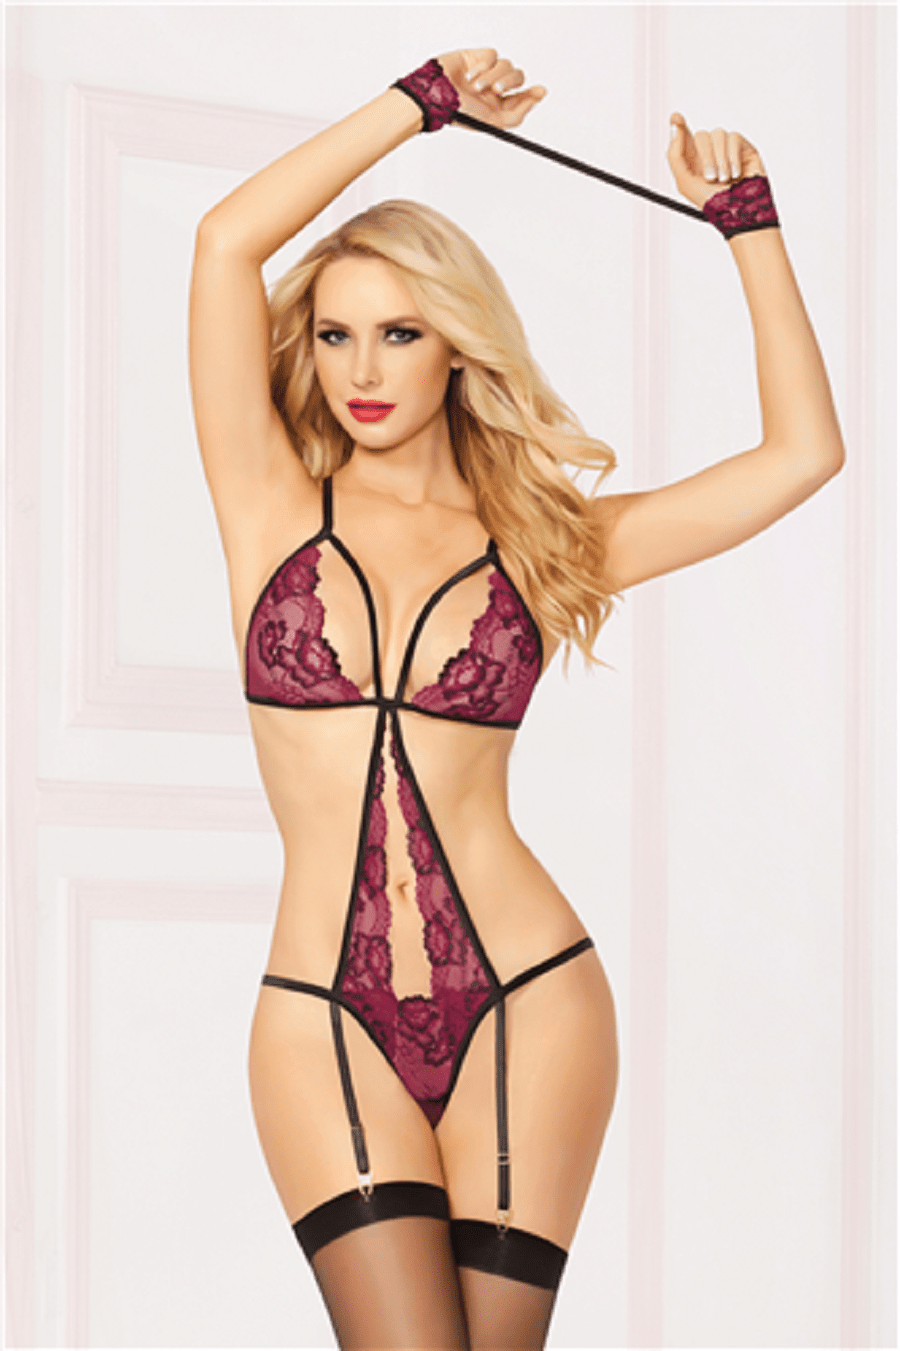 seven til midnight Teddy One Size UK 6-16 Cross Dye Lace Teddy